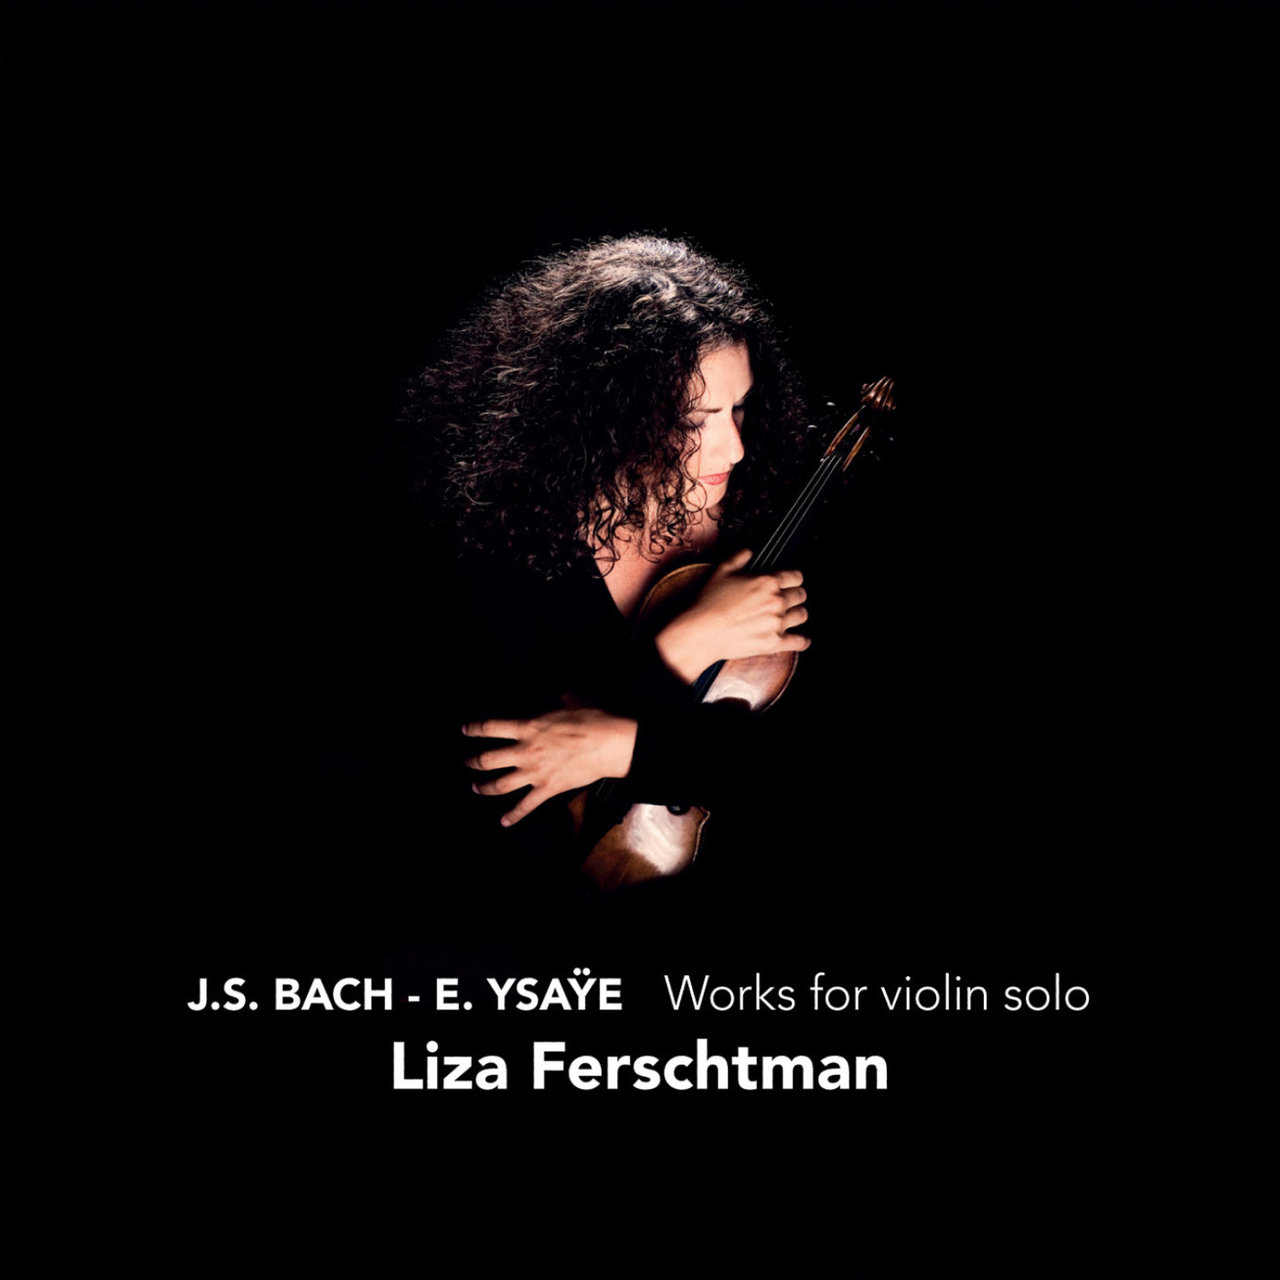 Bach & Ysaÿe: Works for Violin Solo